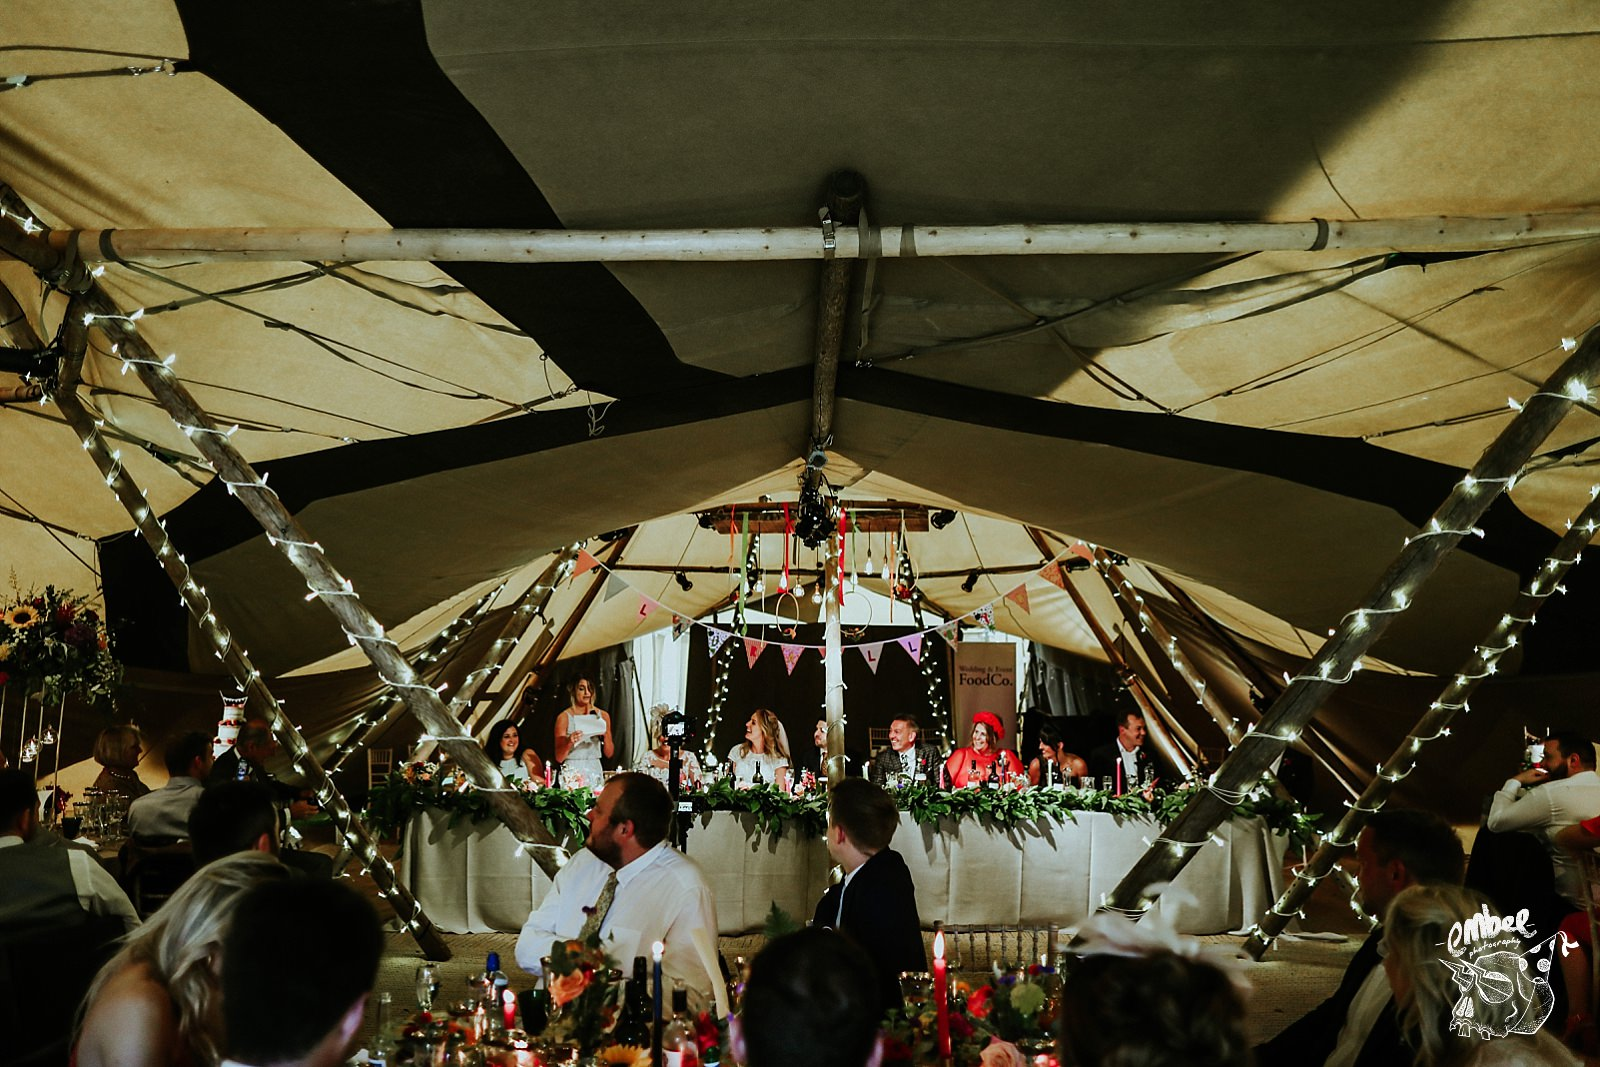 inside shot of the wedding tipi